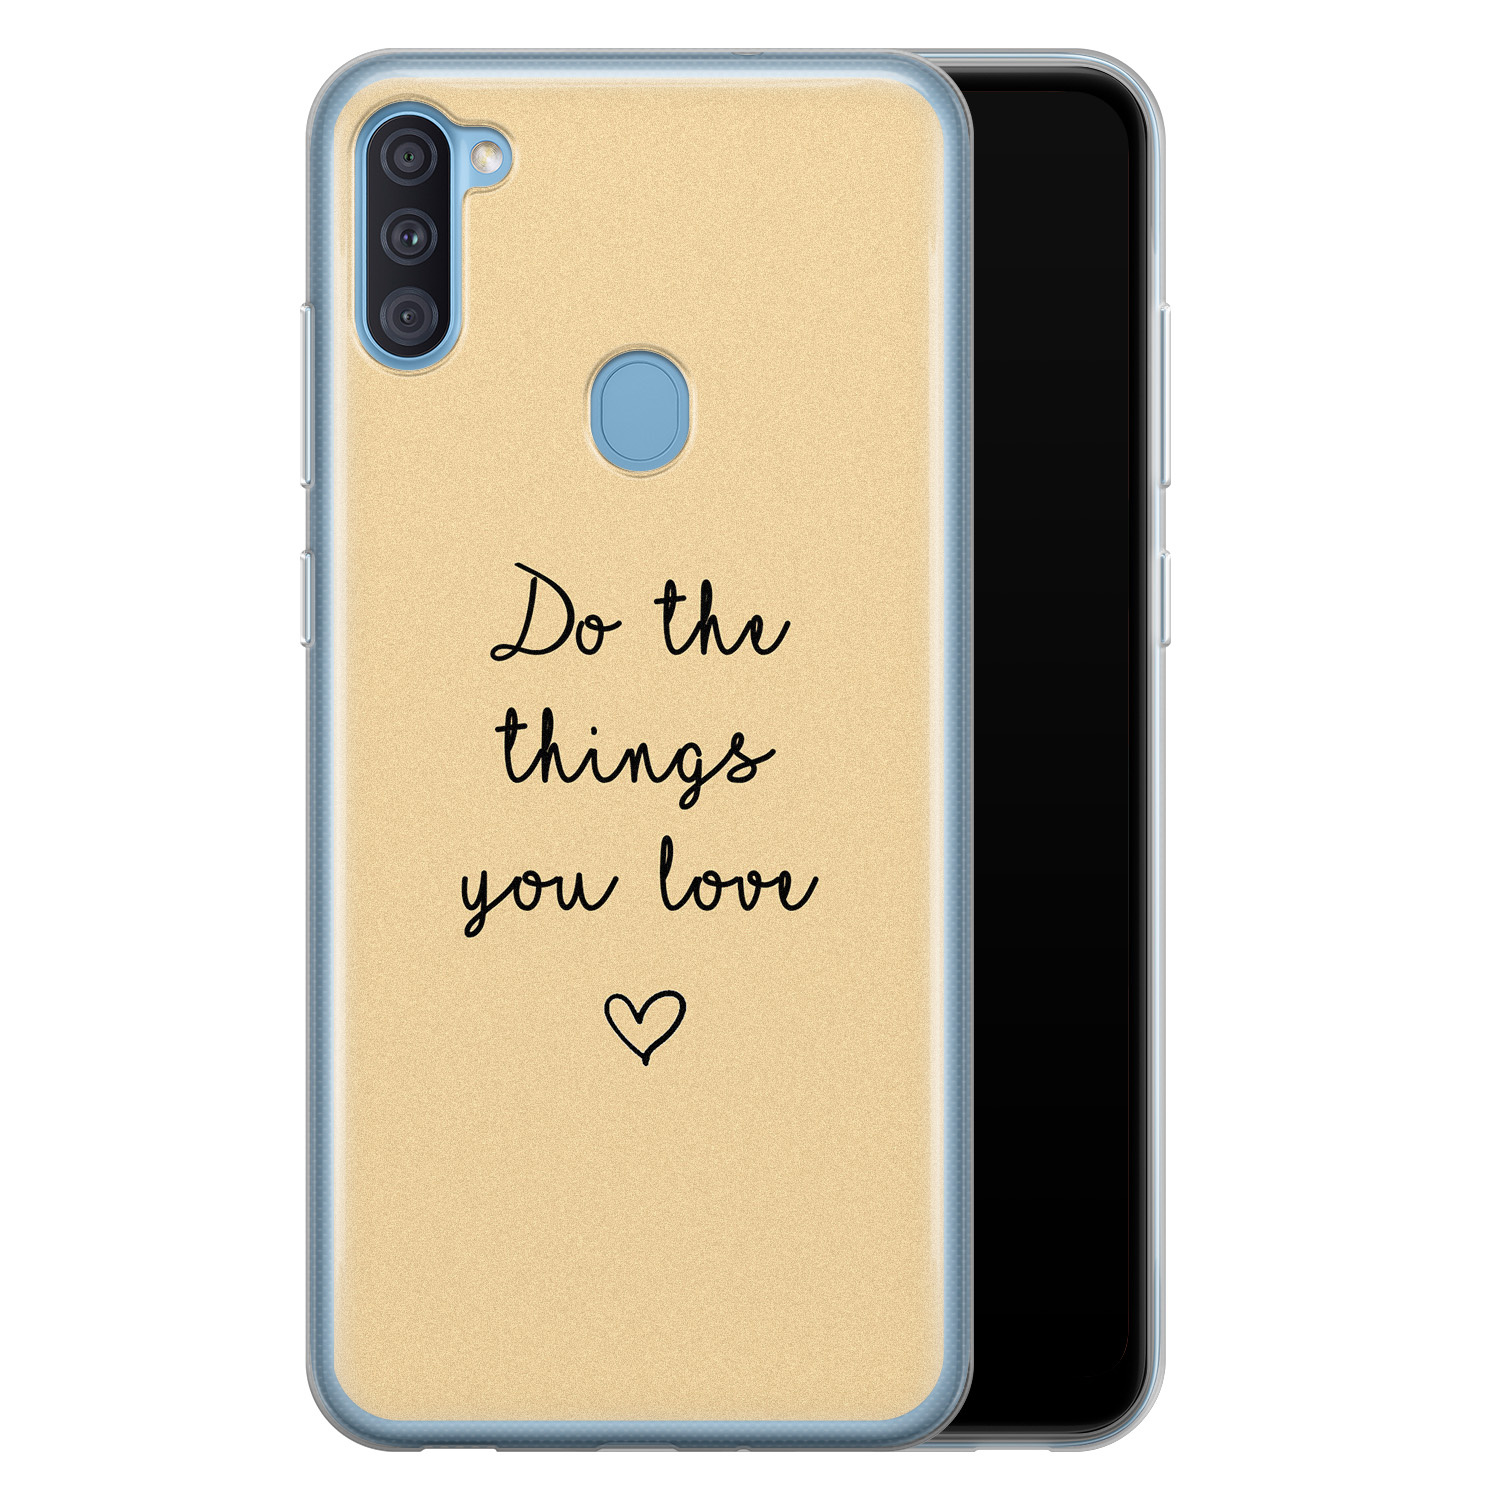 Samsung Galaxy A11 siliconen hoesje - Do the things you love